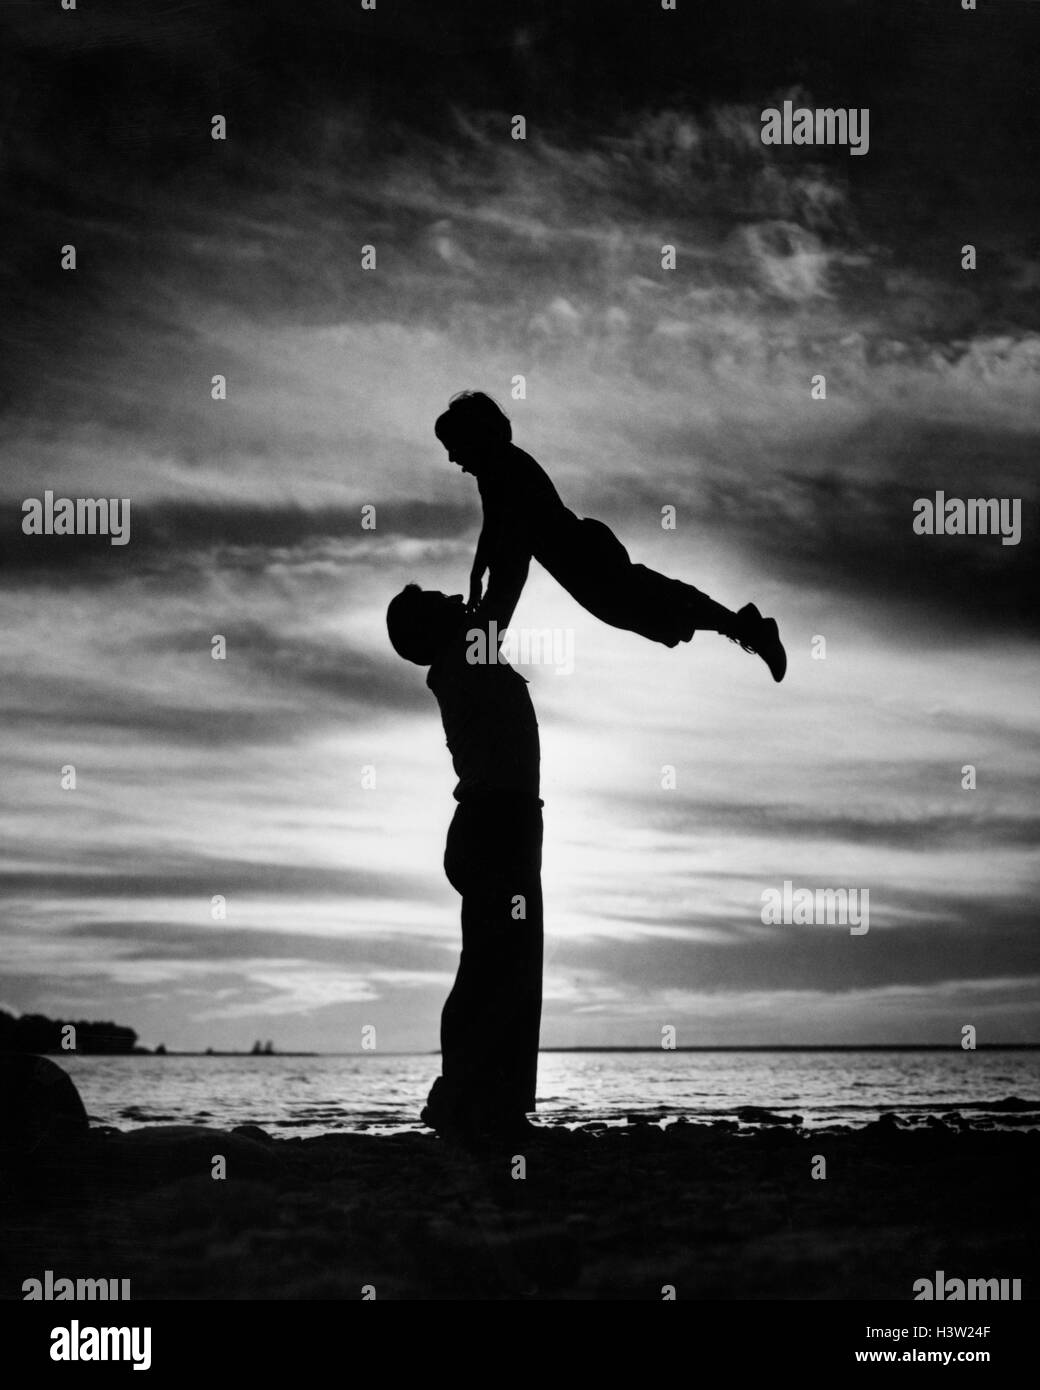 1940s 1950s ANONYMOUS SILHOUETTED MAN FATHER LIFTING CHILD SON IN AIR ON SHORE AT DUSK - Stock Image